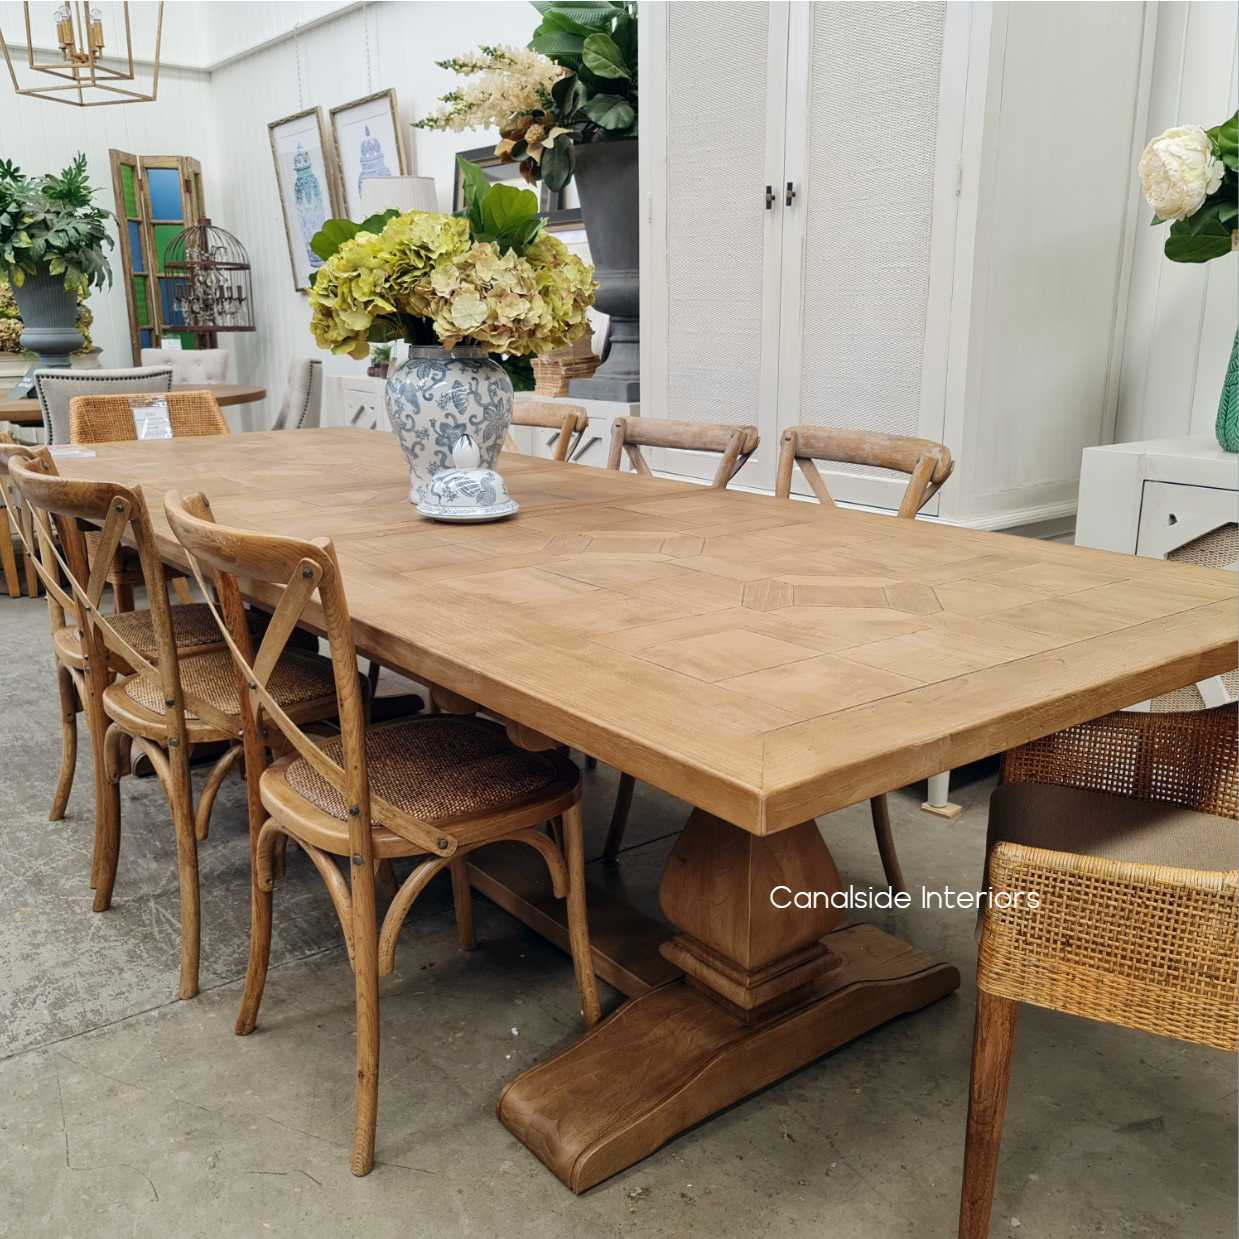 Como Parquetry Double Extension Banquet Dining Table tables, hamptons, hamptons, hampton table, provincial, plantation, dining tables, trestle base, dining room banquet